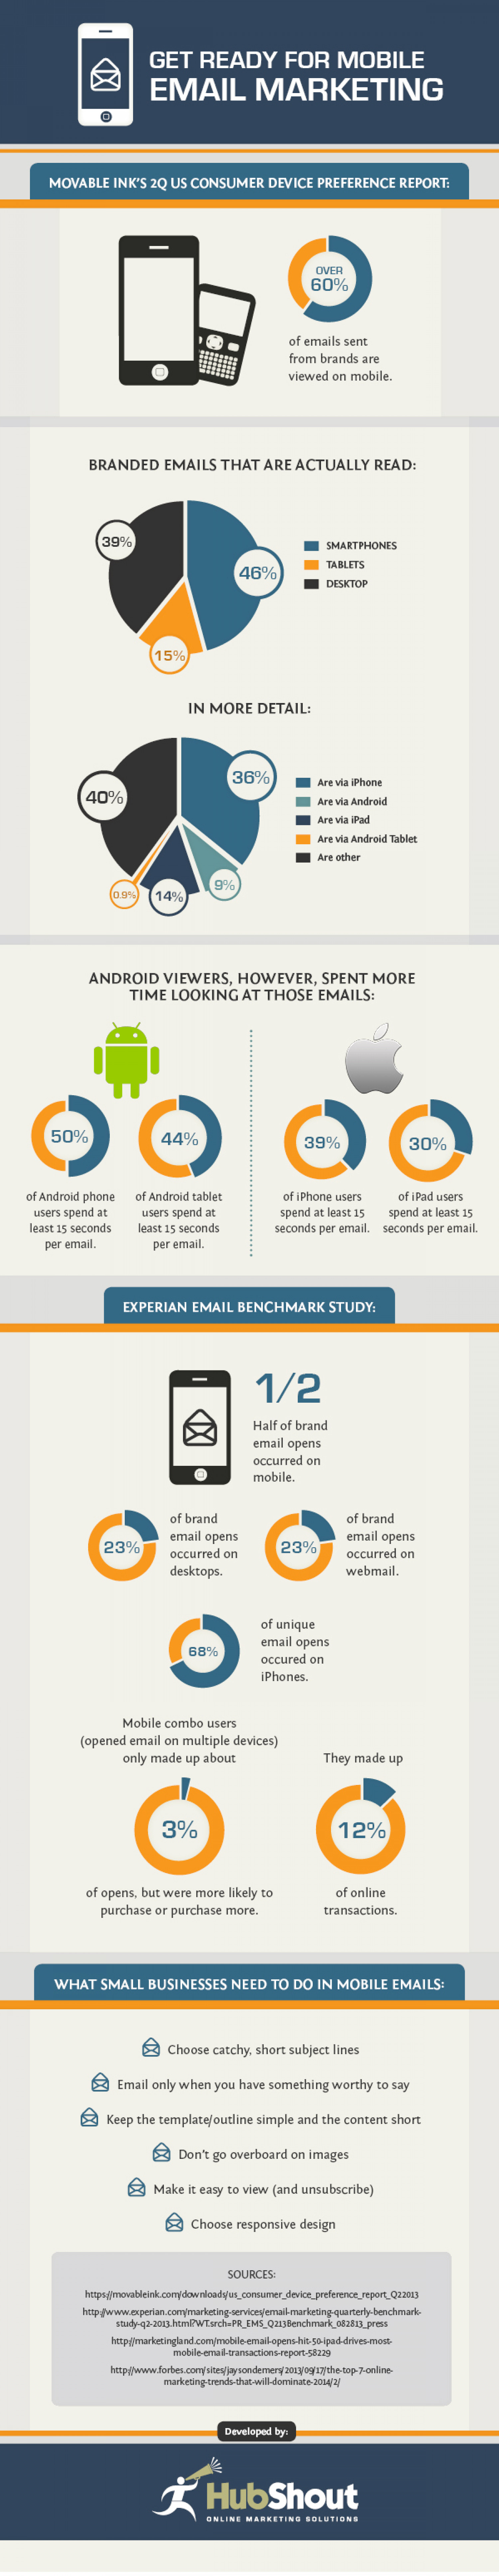 Get Ready for Mobile Email Marketing Infographic